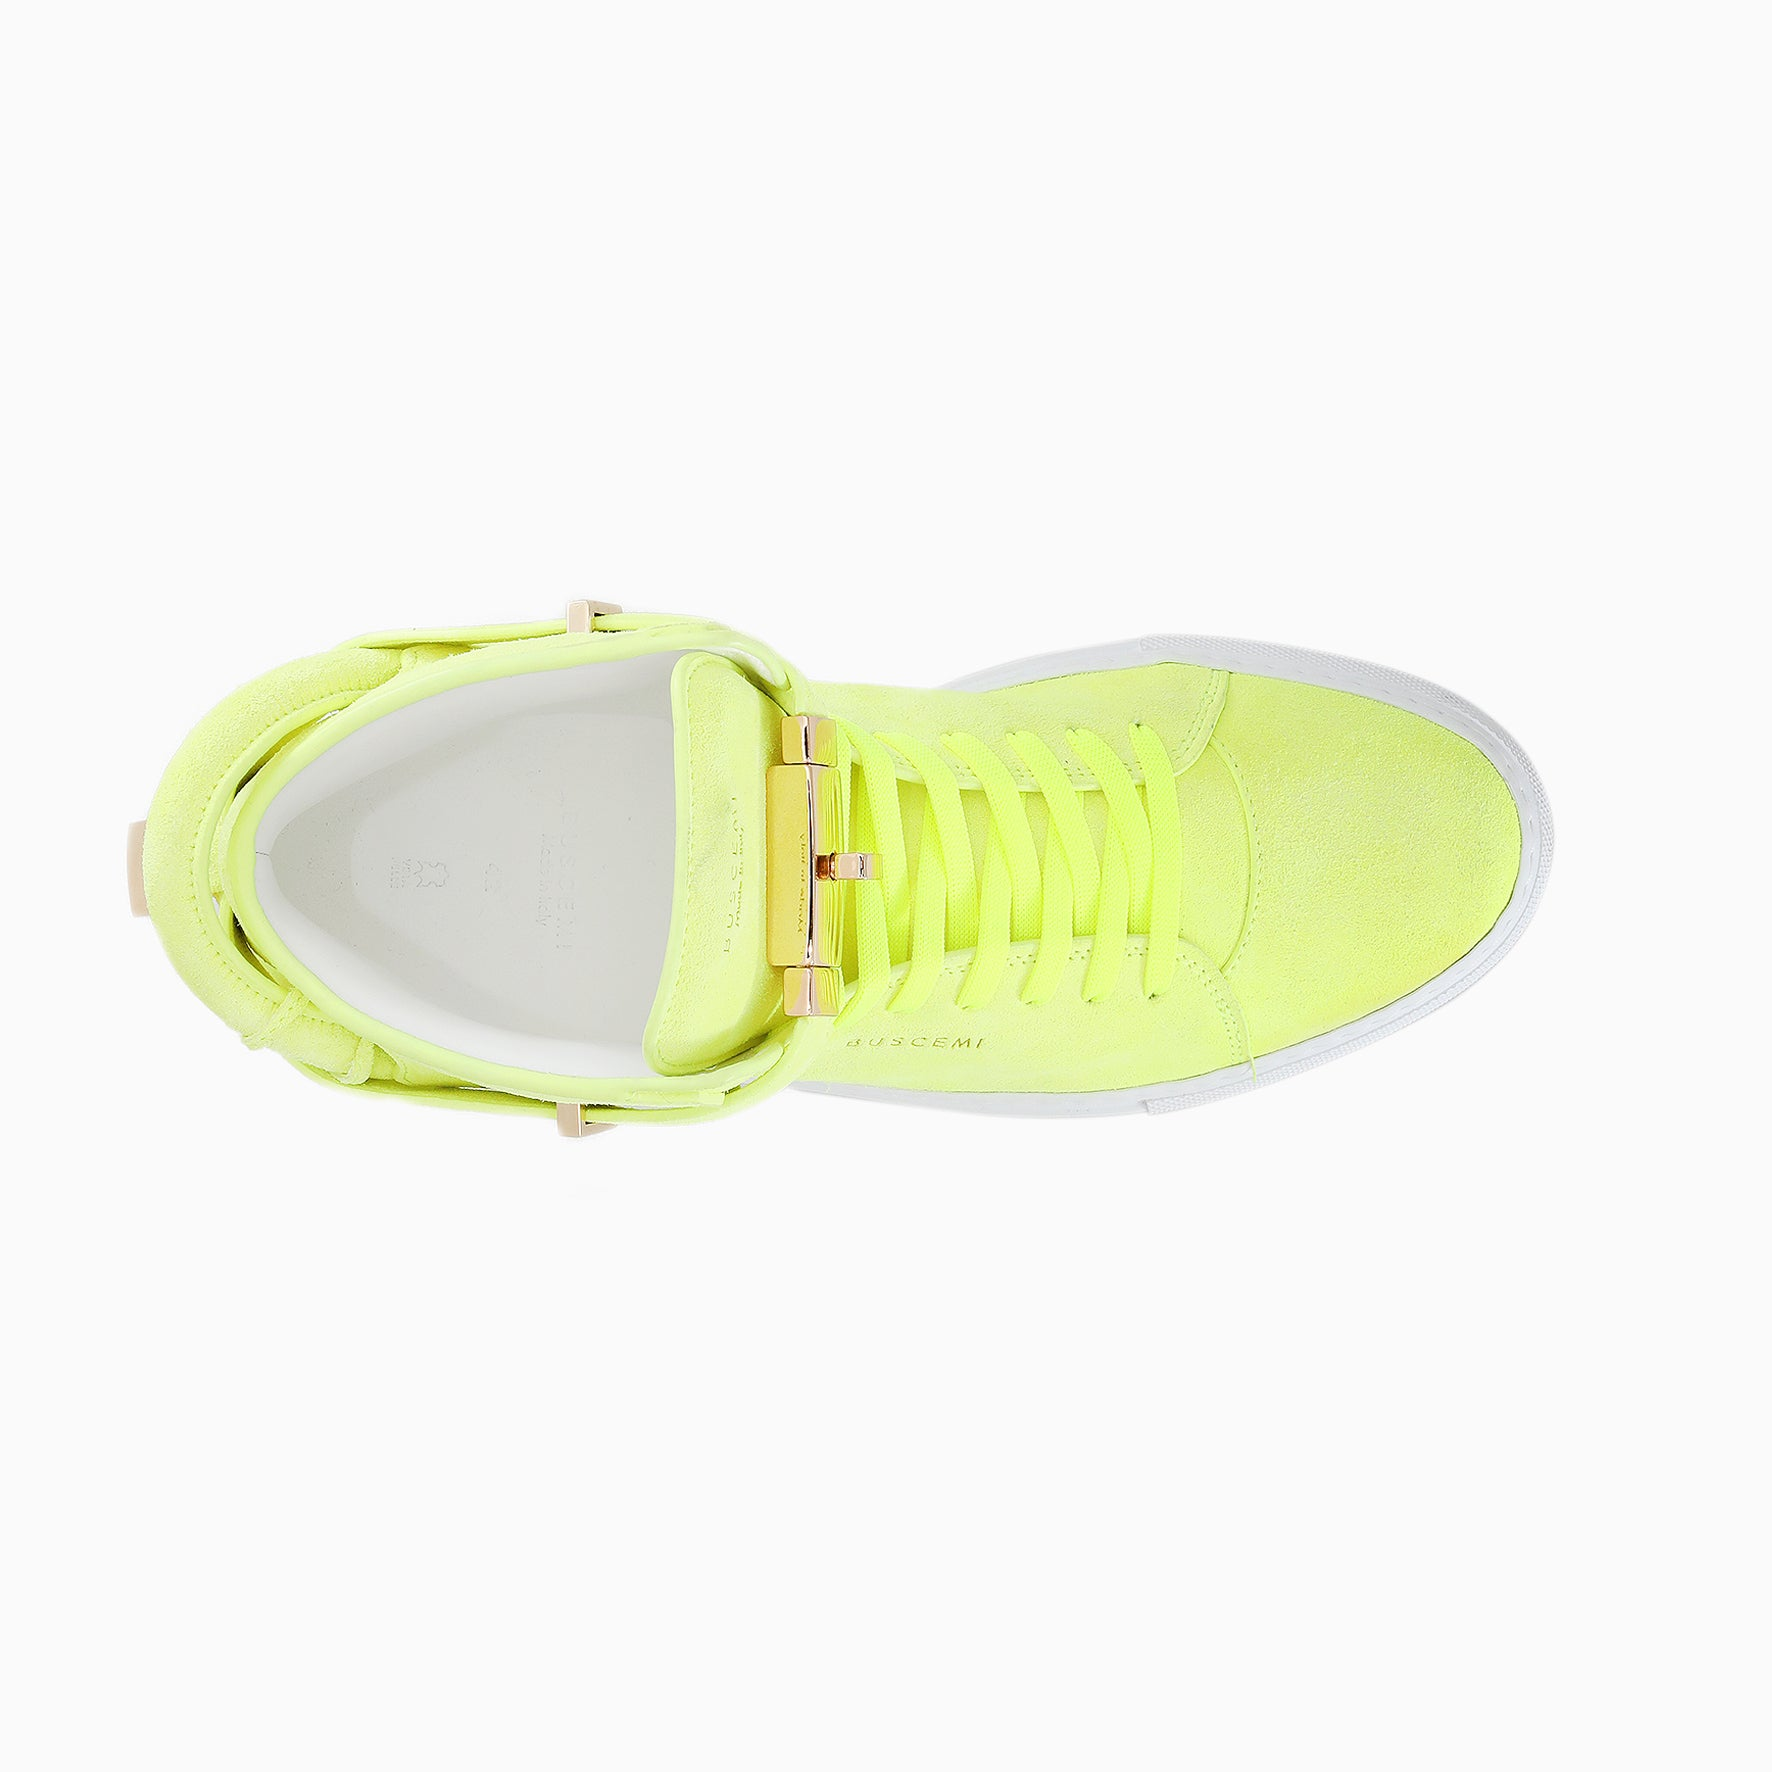 Buscemi italian leather , yellow high top sneaker